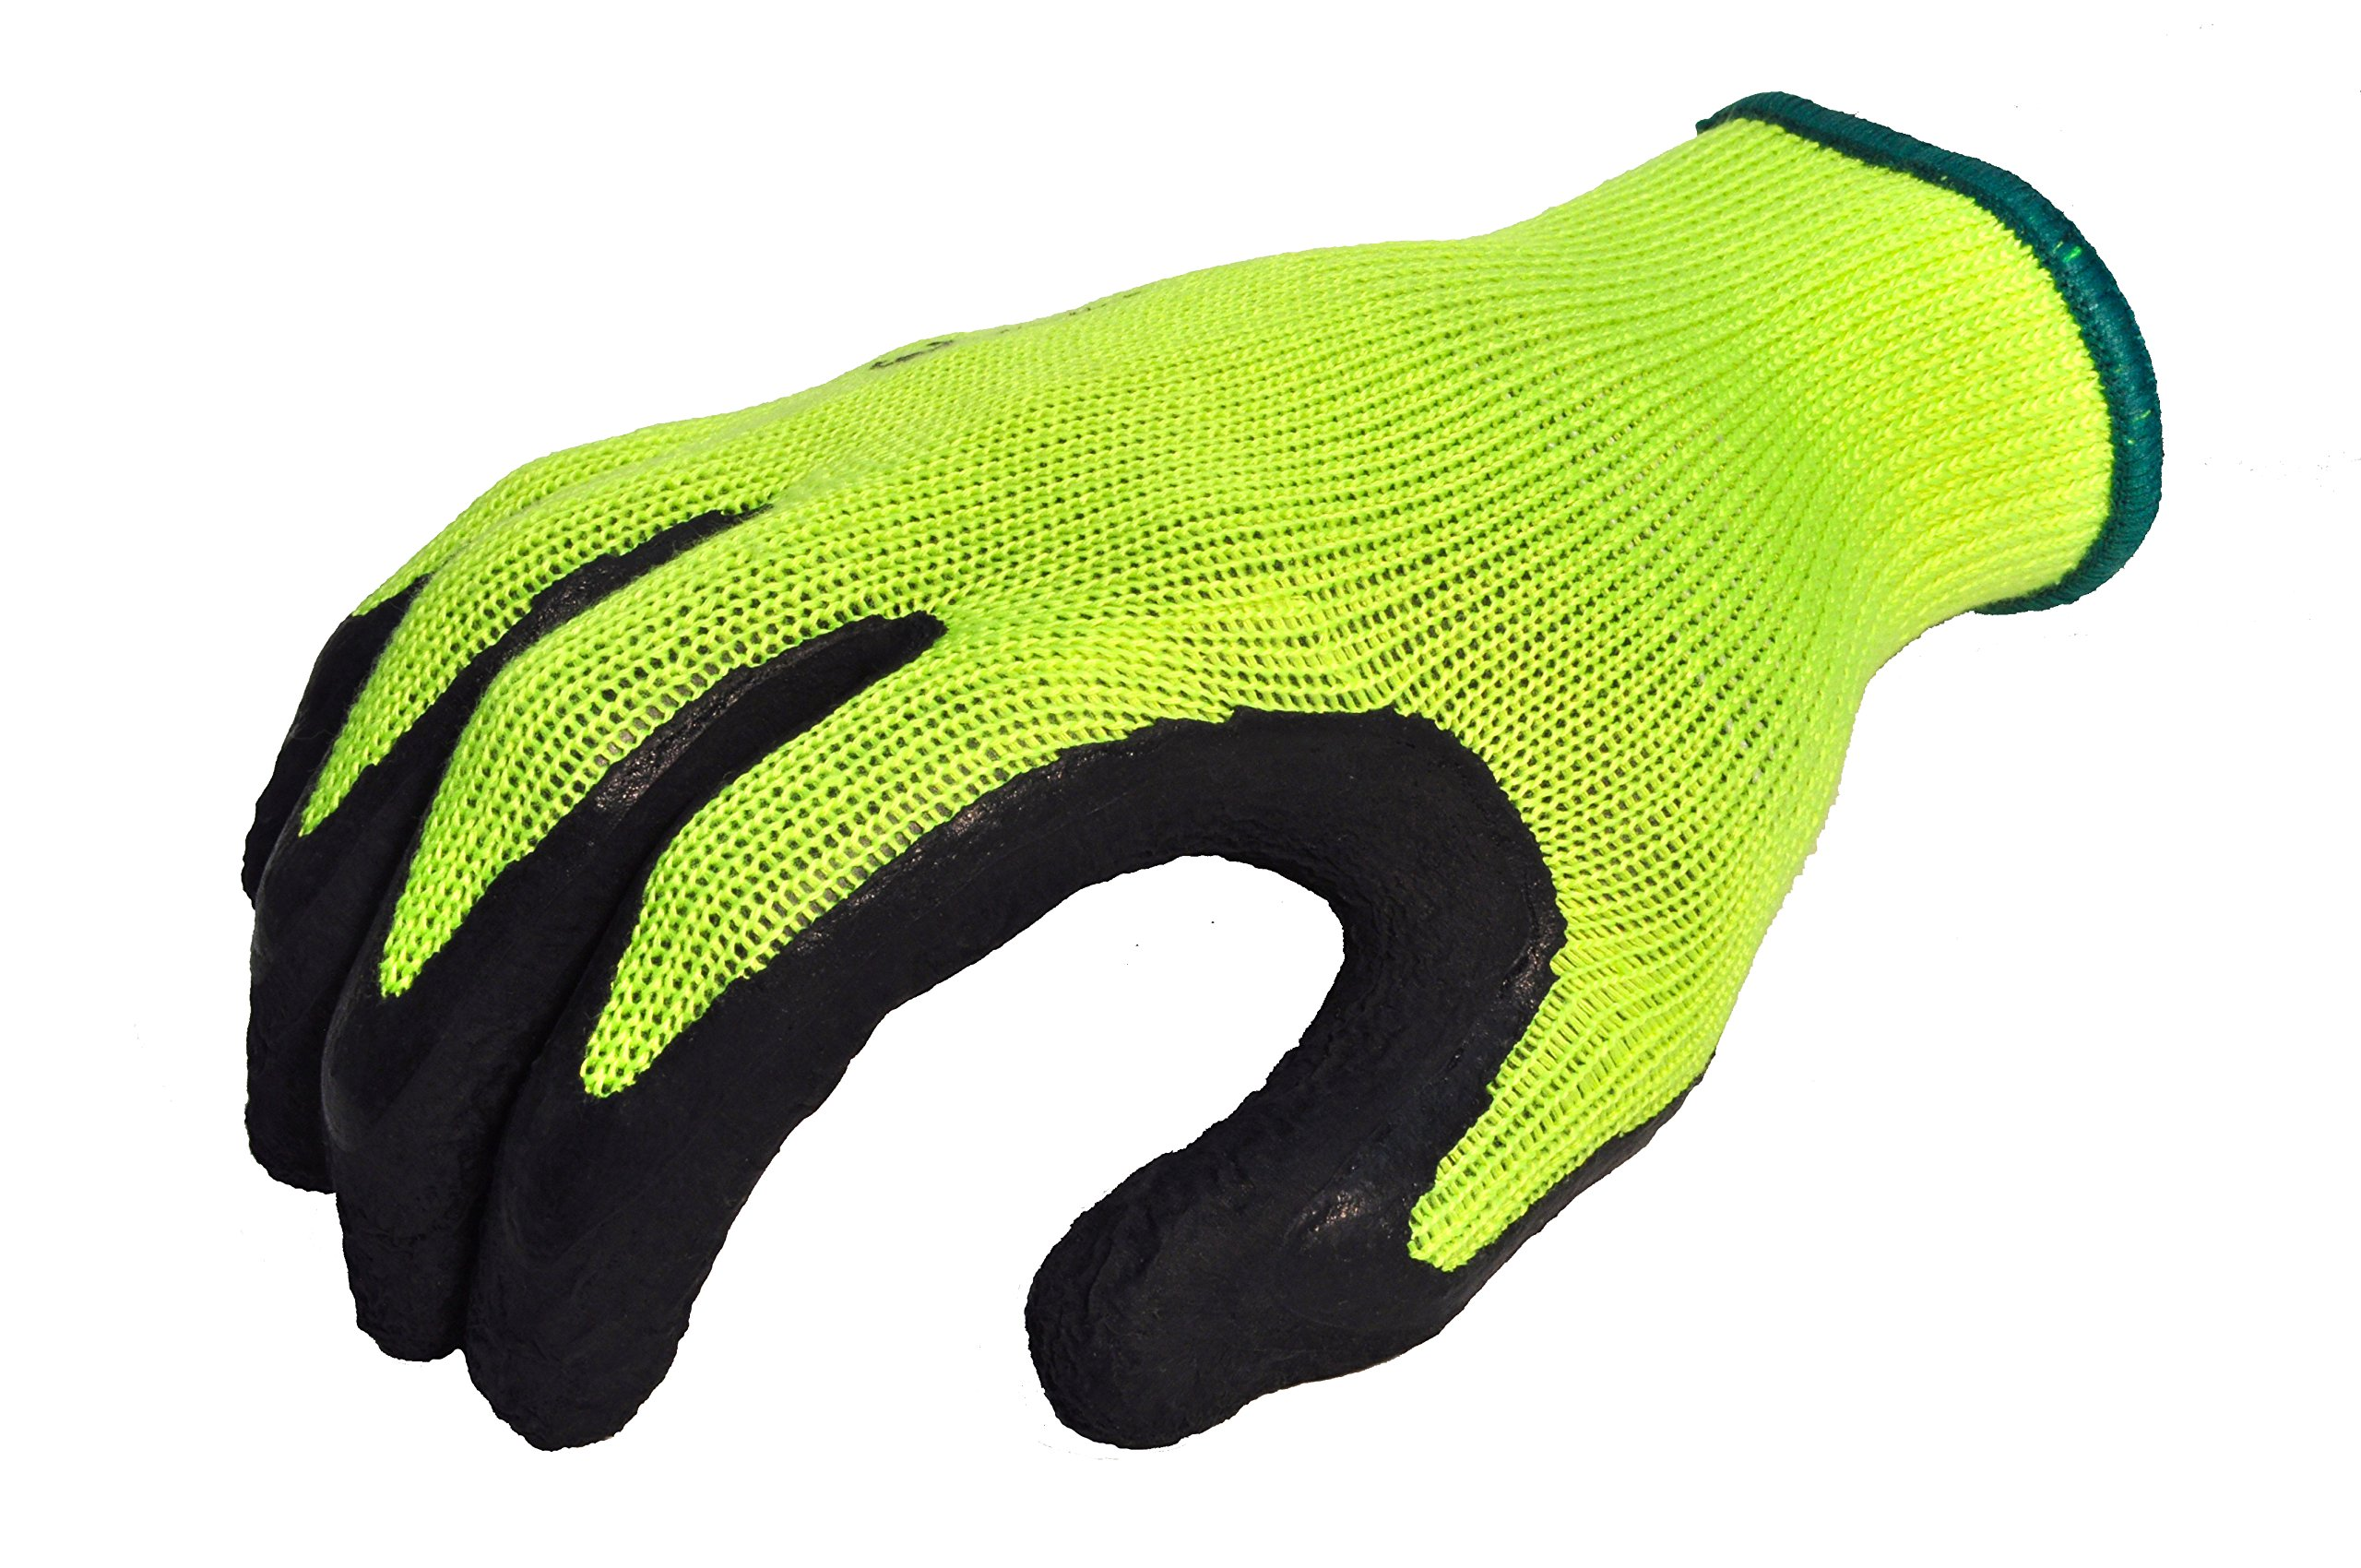 G & F 1516XL-3 Premium High Visibility Work Gloves for General Purpose, MicroFoam Double Textured Latex Coated Work Gloves, Garden Gloves, Men and Women Work Gloves, XLarge, 3 Pair Pack by G & F Products (Image #2)